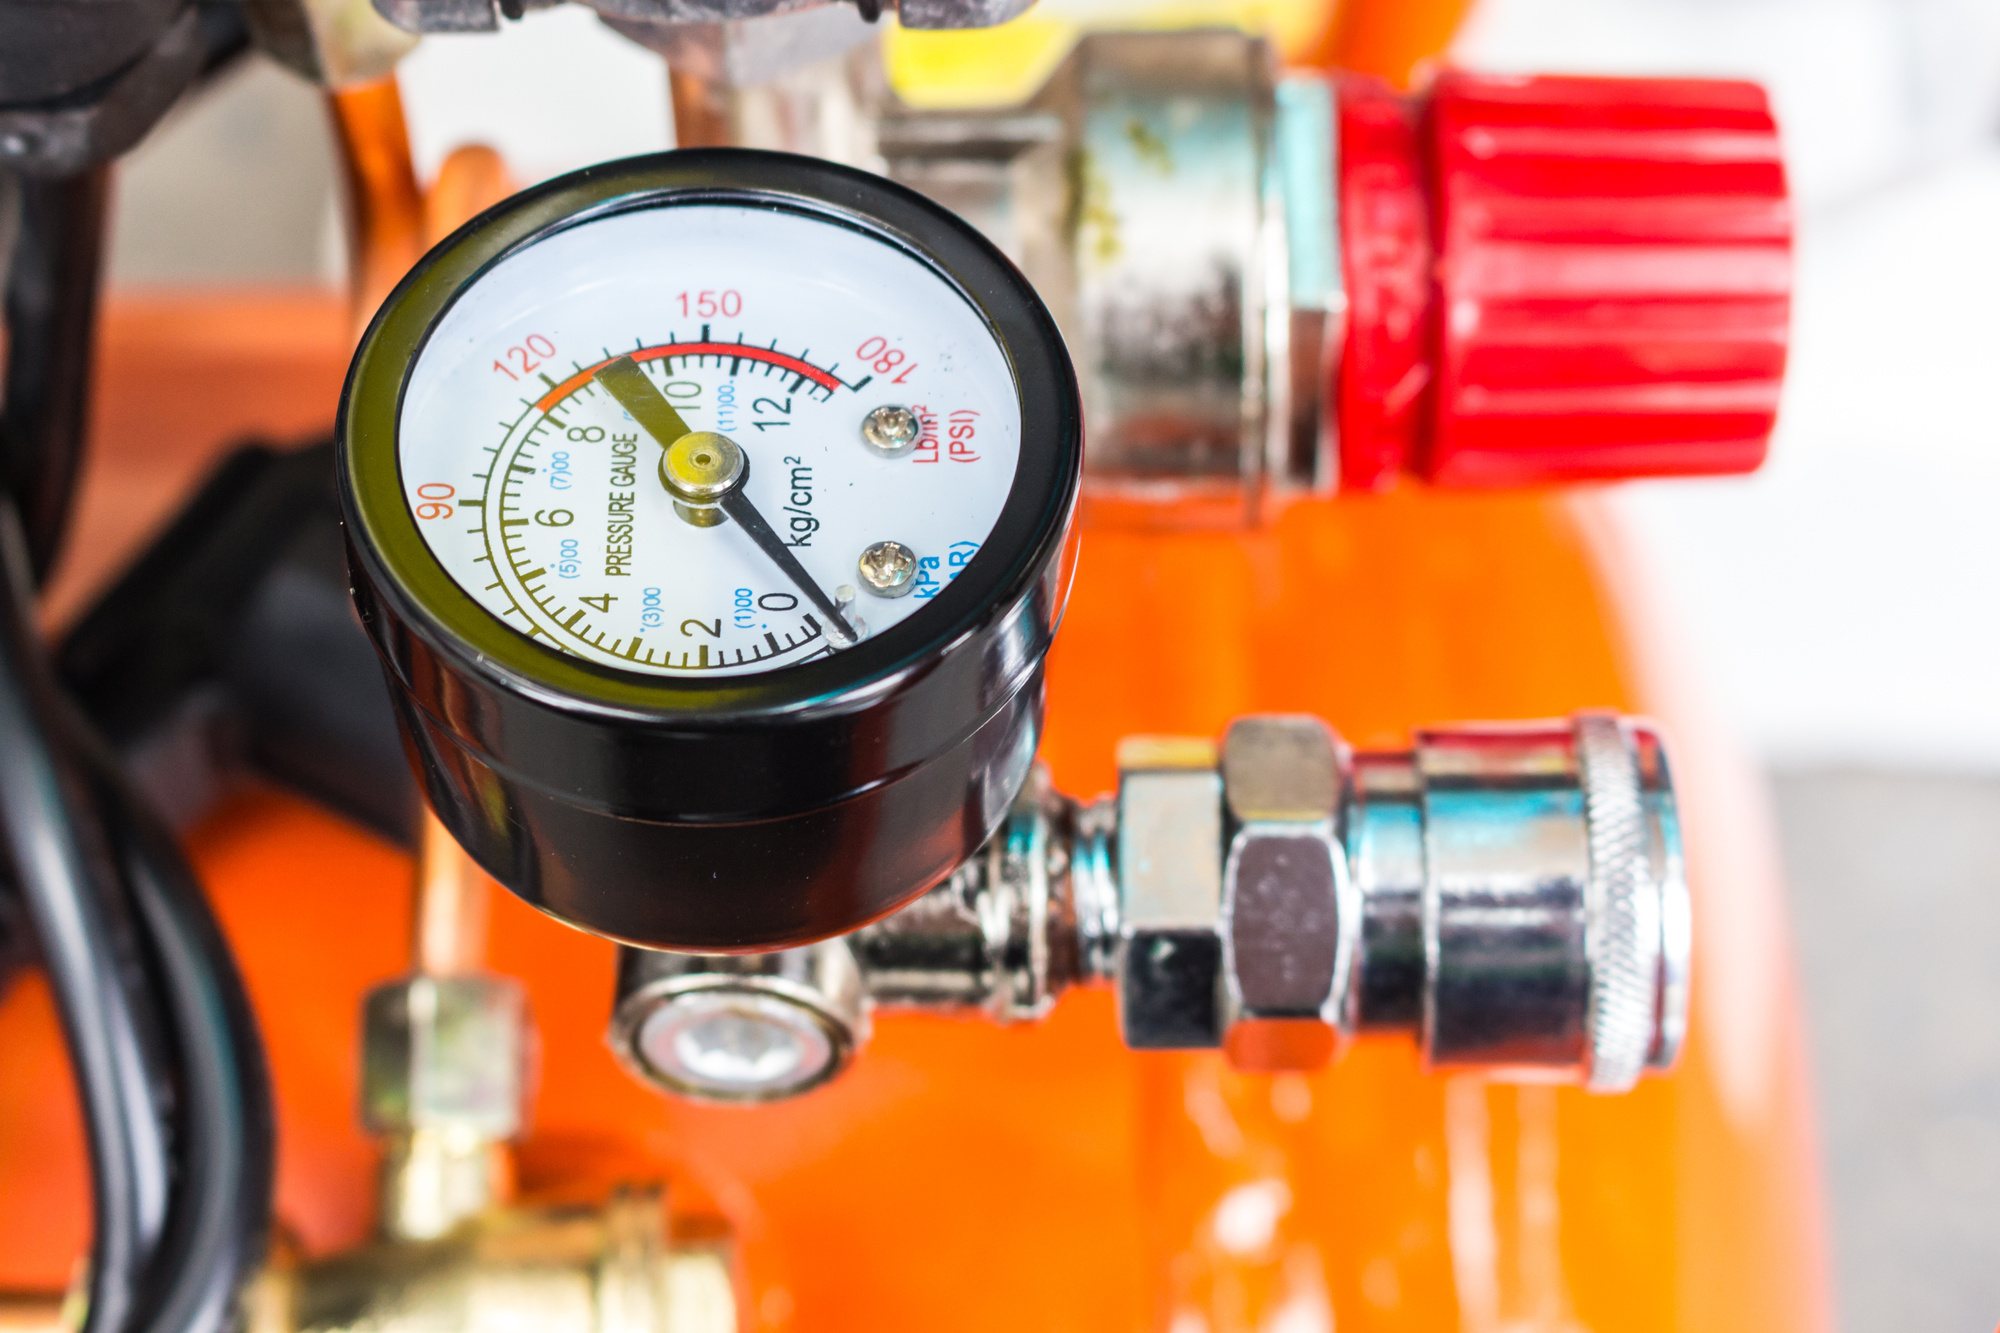 How To Use An Air Compressor >> 5 Things To Consider When Choosing An Air Compressor For